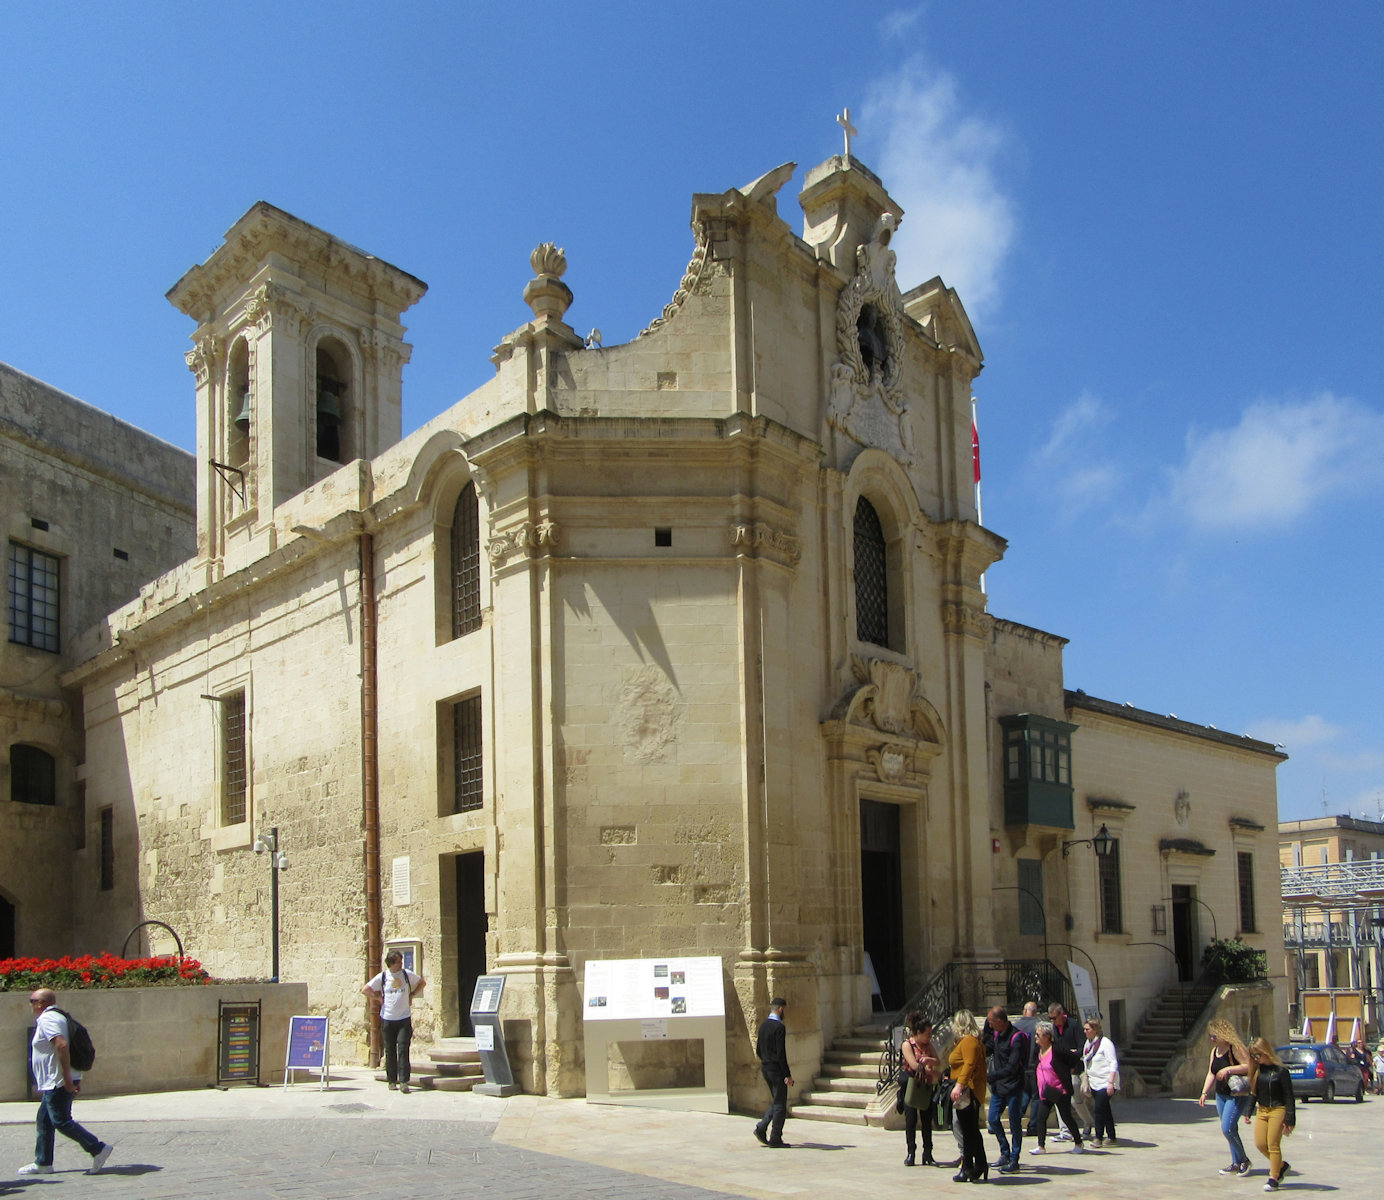 Kirche Our Lady of Victories in Valletta